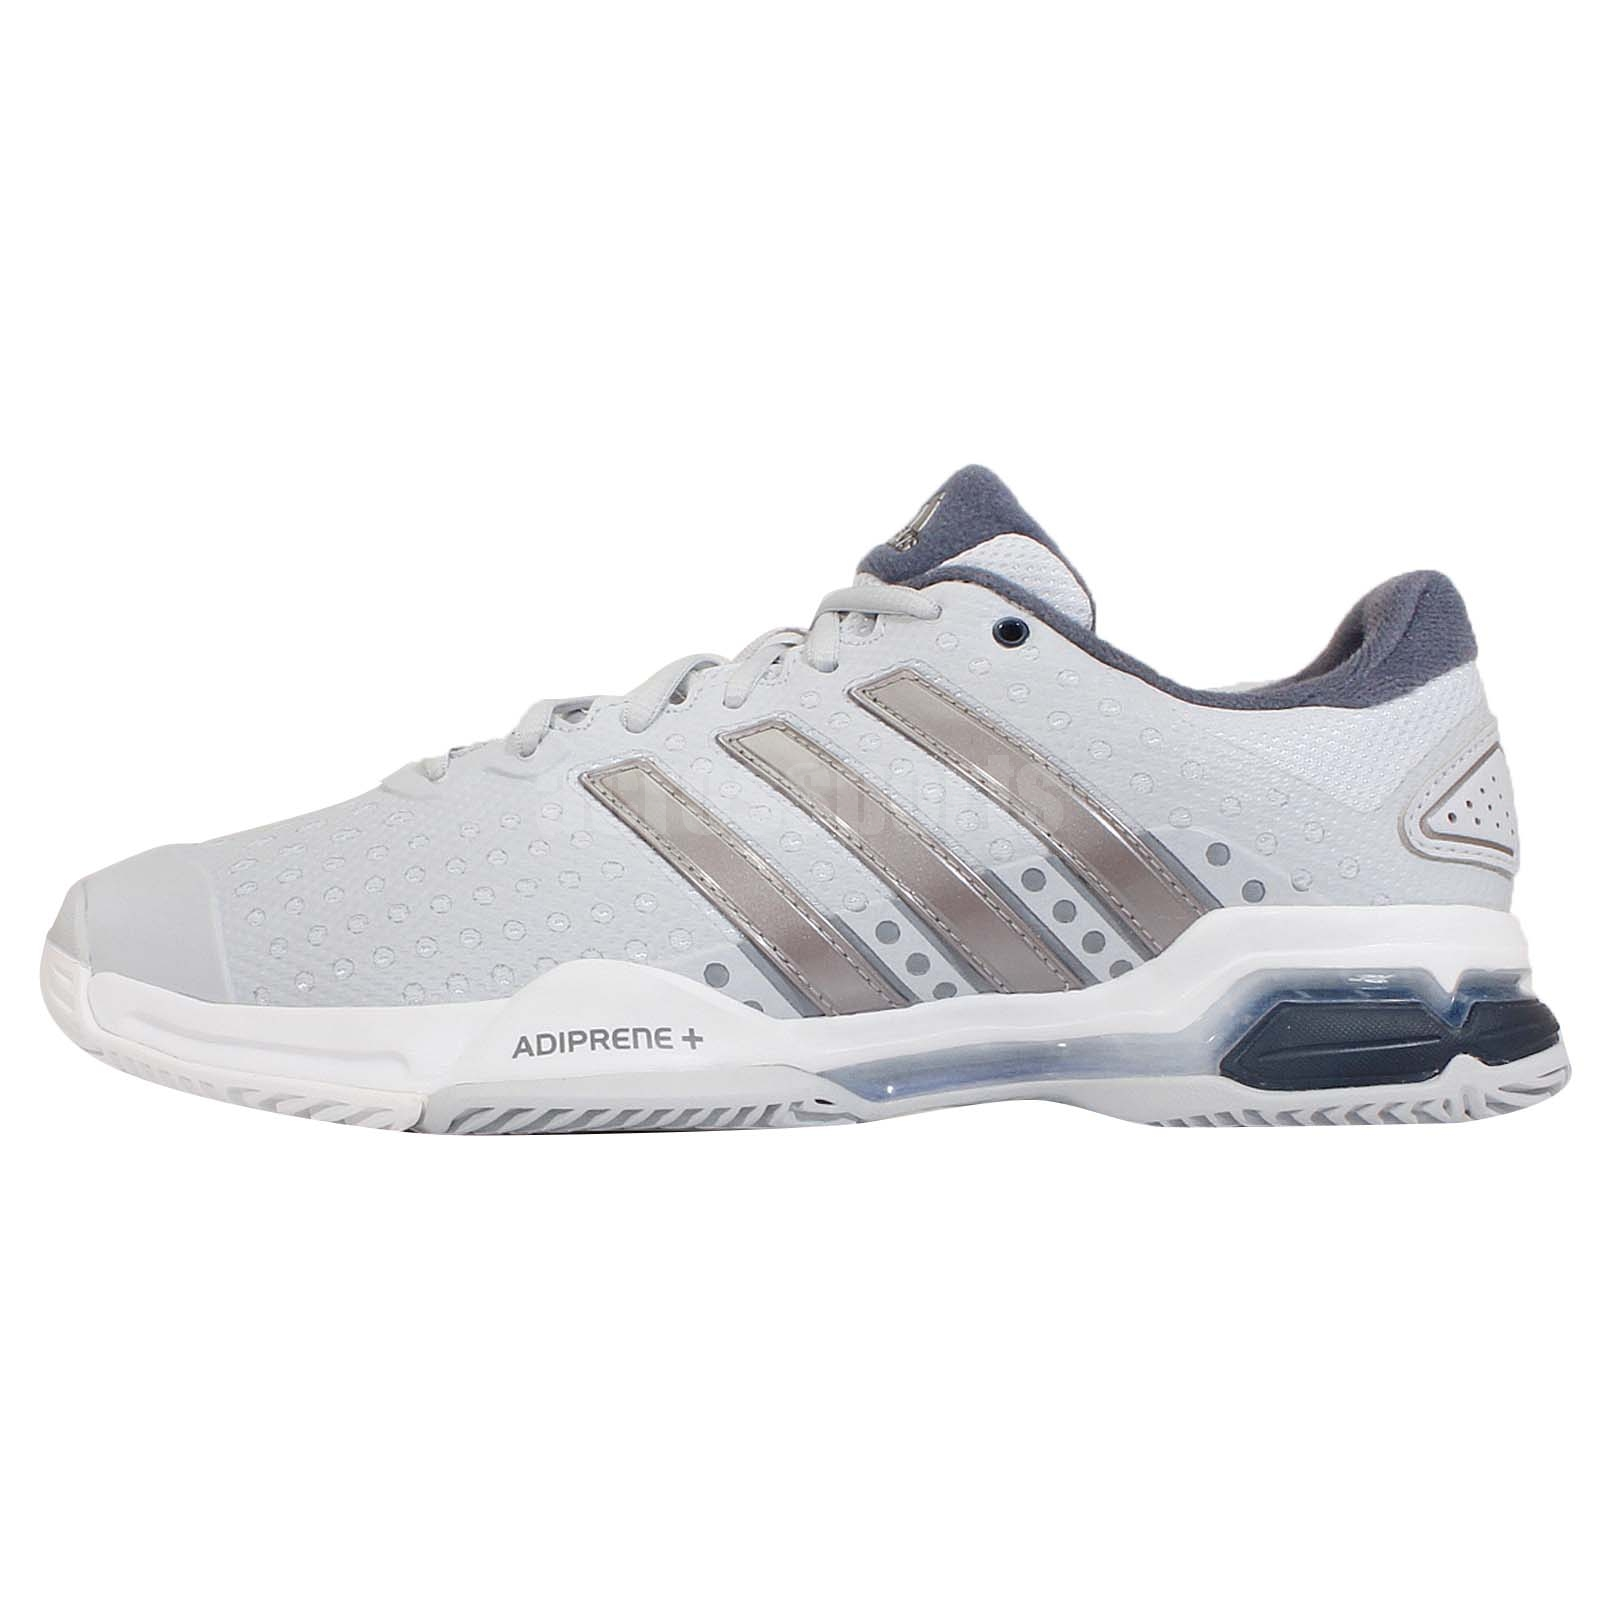 f12c7469f434 ... tom tom accessoires - Adidas Barricade Team 4 Grey Silver White adiPRENE  Mens Tennis . ...